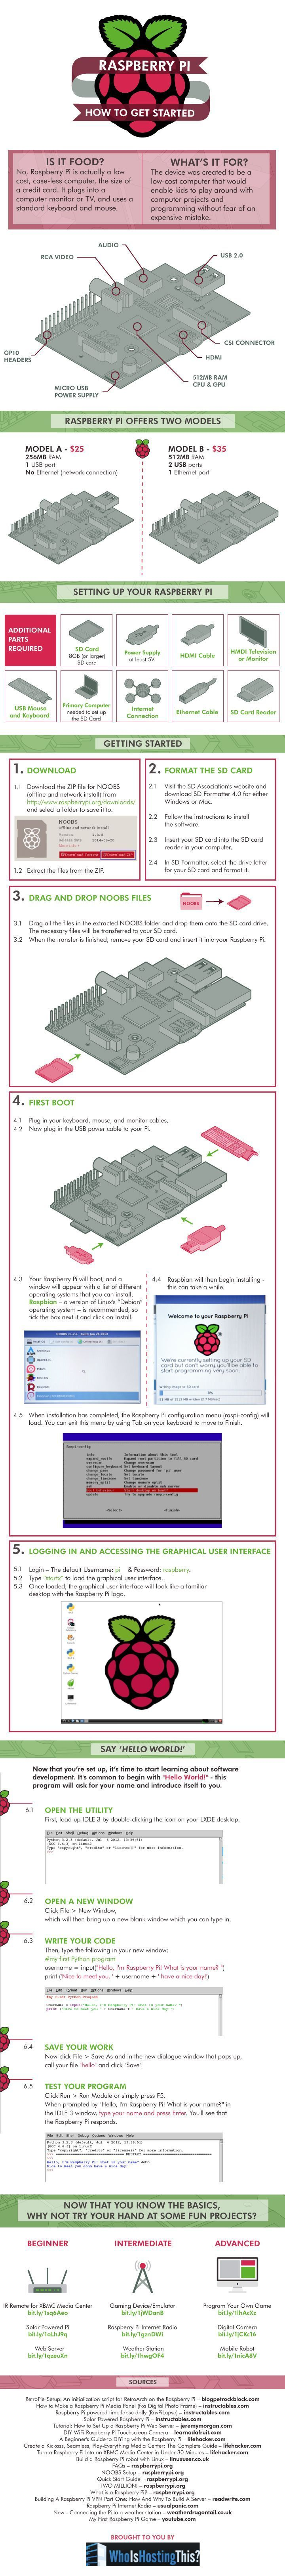 Many of us have heard of the Raspberry Pi in the past. It may sound like a food but is anything but. It is a great tool for folks who want to try exciting electronics projects. This infographic from WhoIsHostingThis shows you how to get started with it: